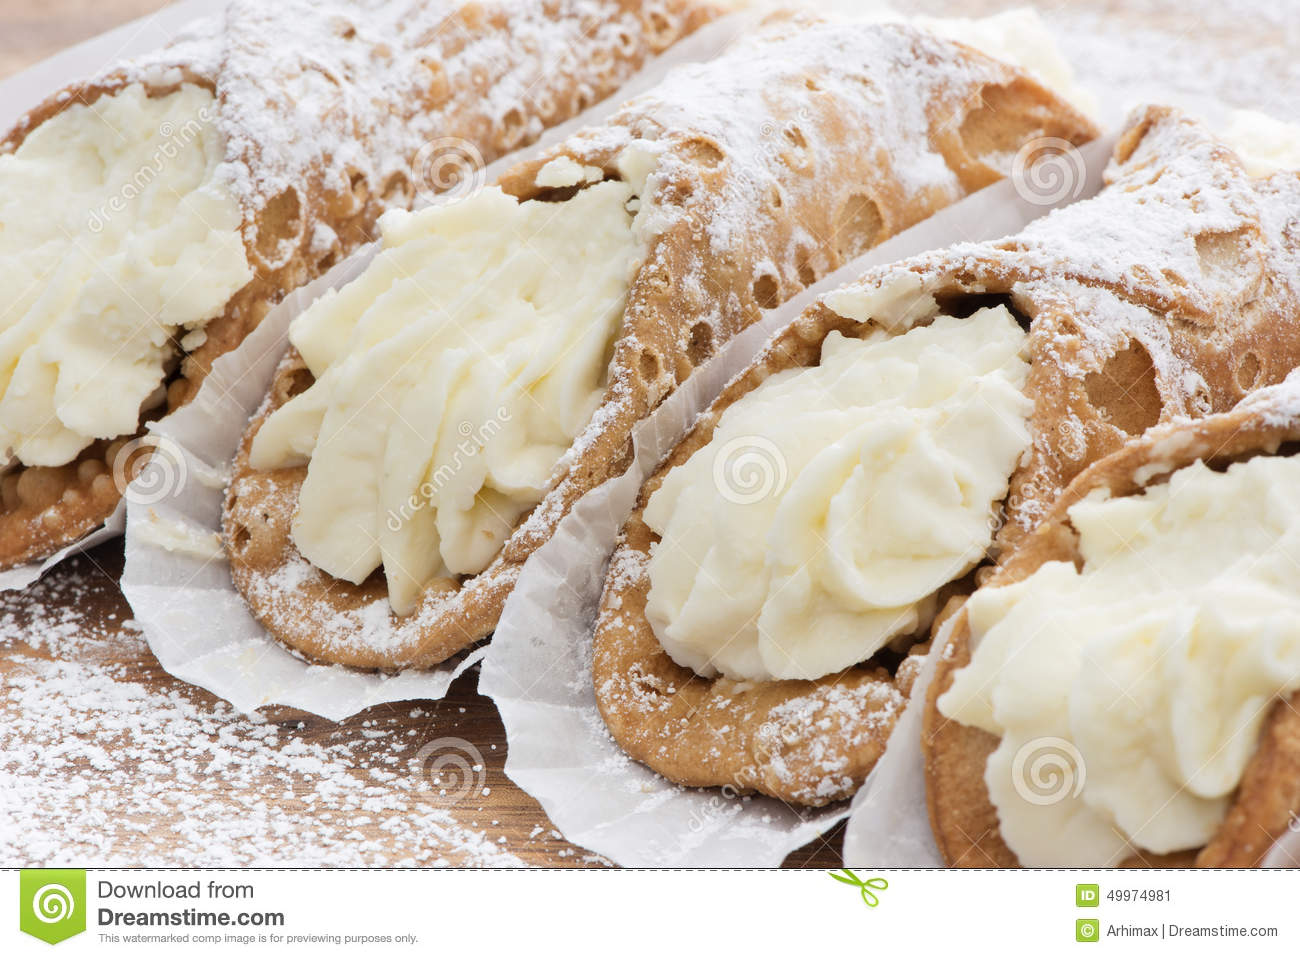 how to make cannoli cream thicker